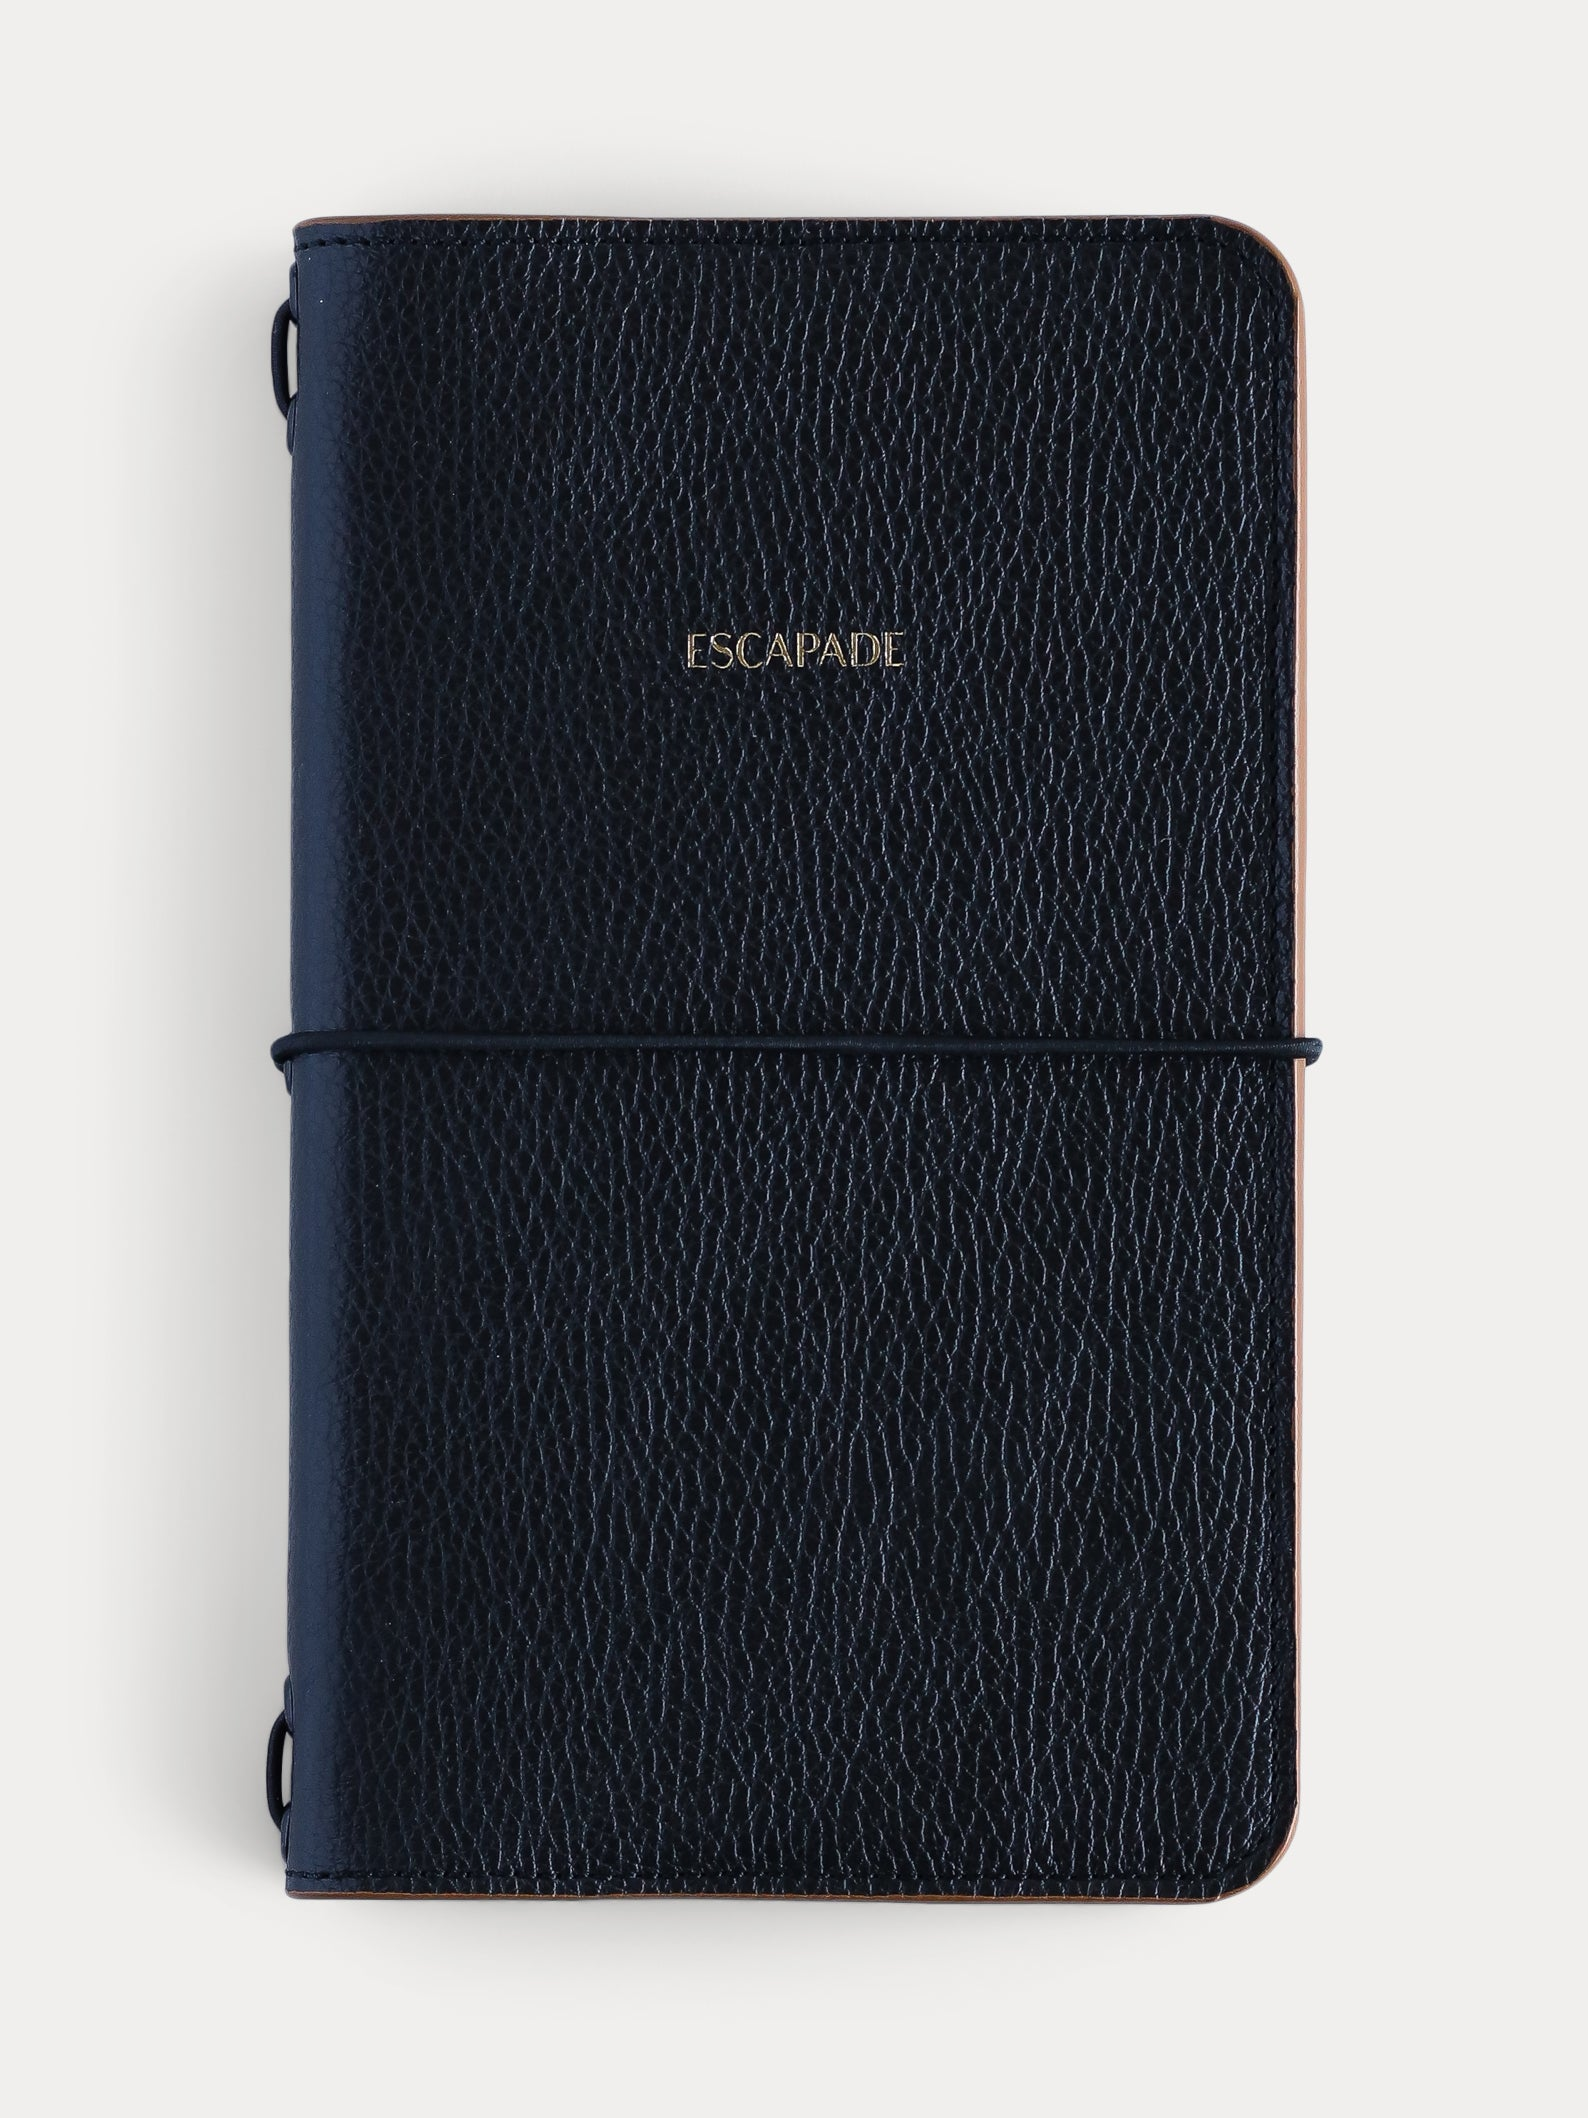 handmade-black-leather-notebook